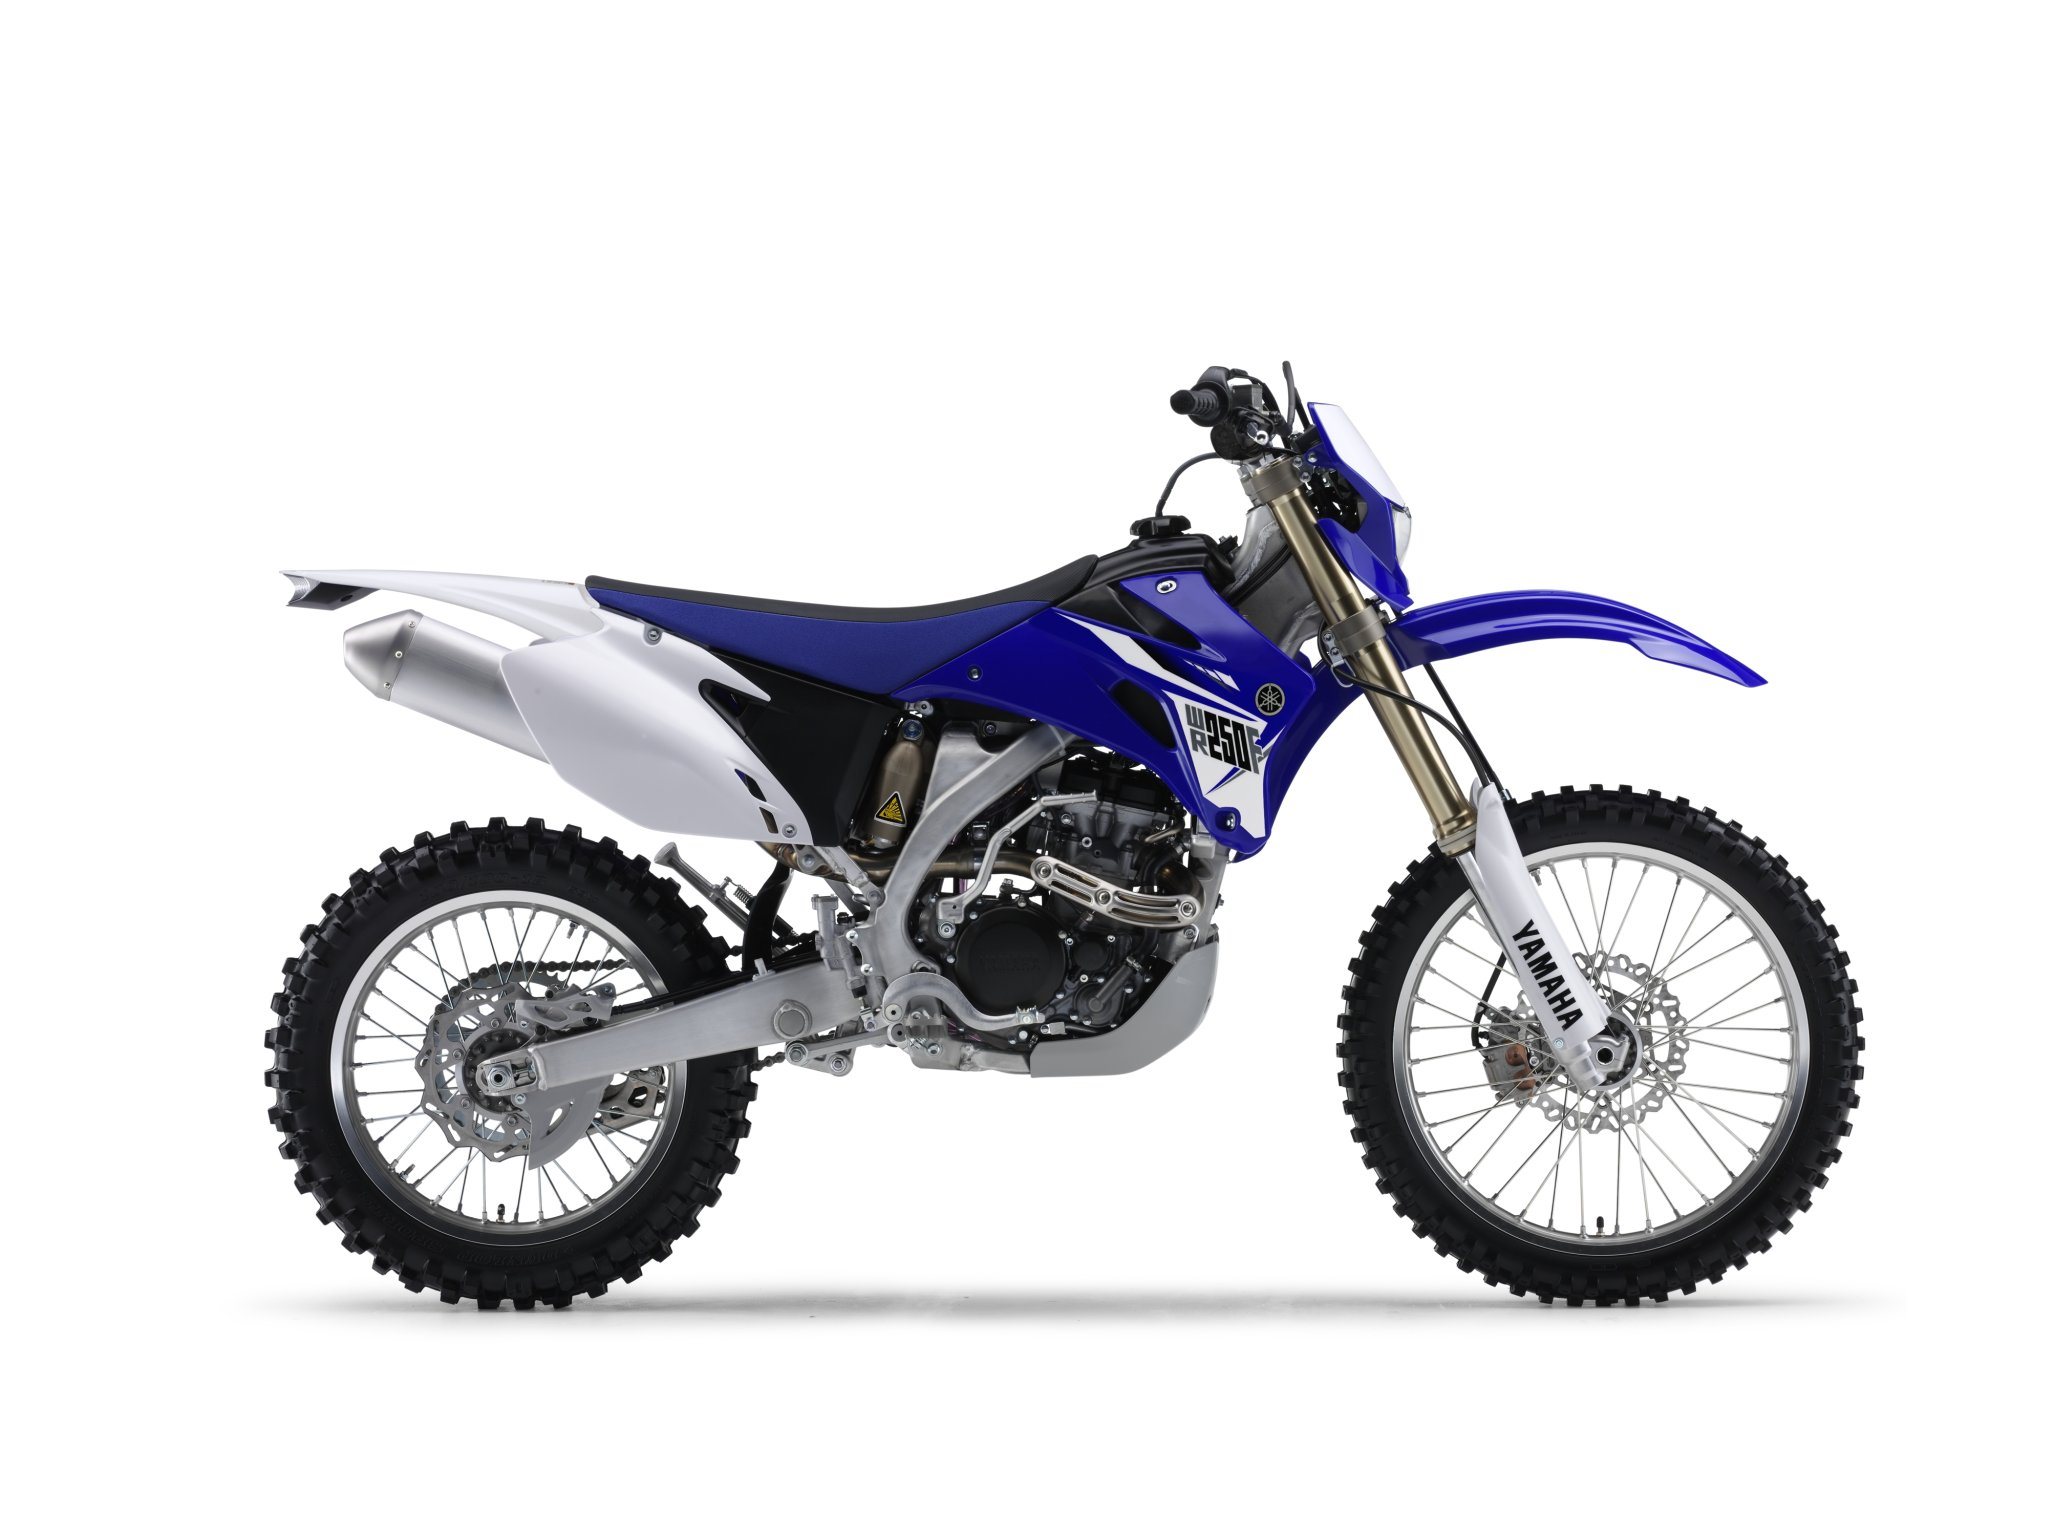 Yamaha Motorcycle Dealer Grand Junction